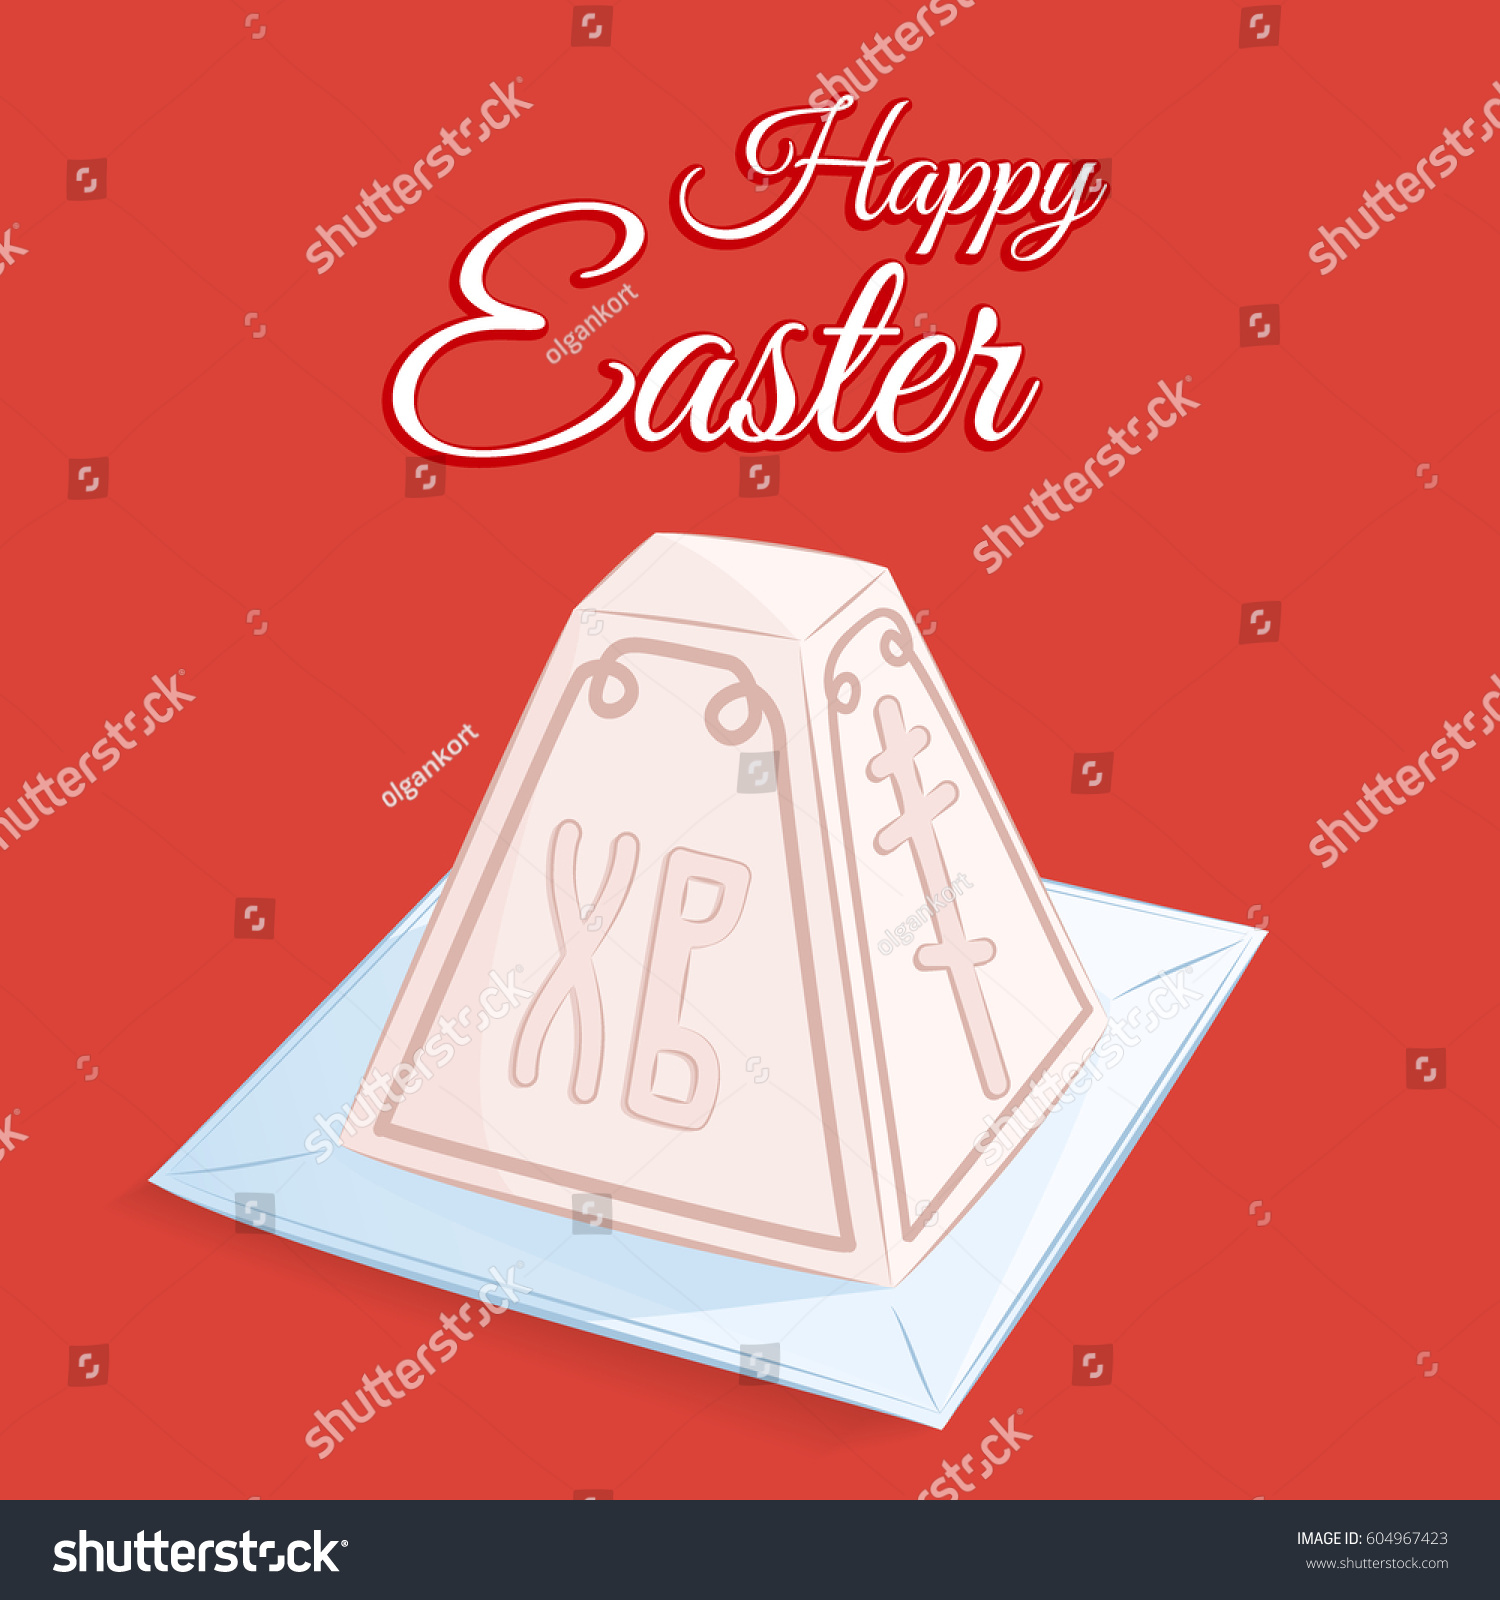 Orthodox Easter Festive Greeting Card Vector Stock Vector Hd